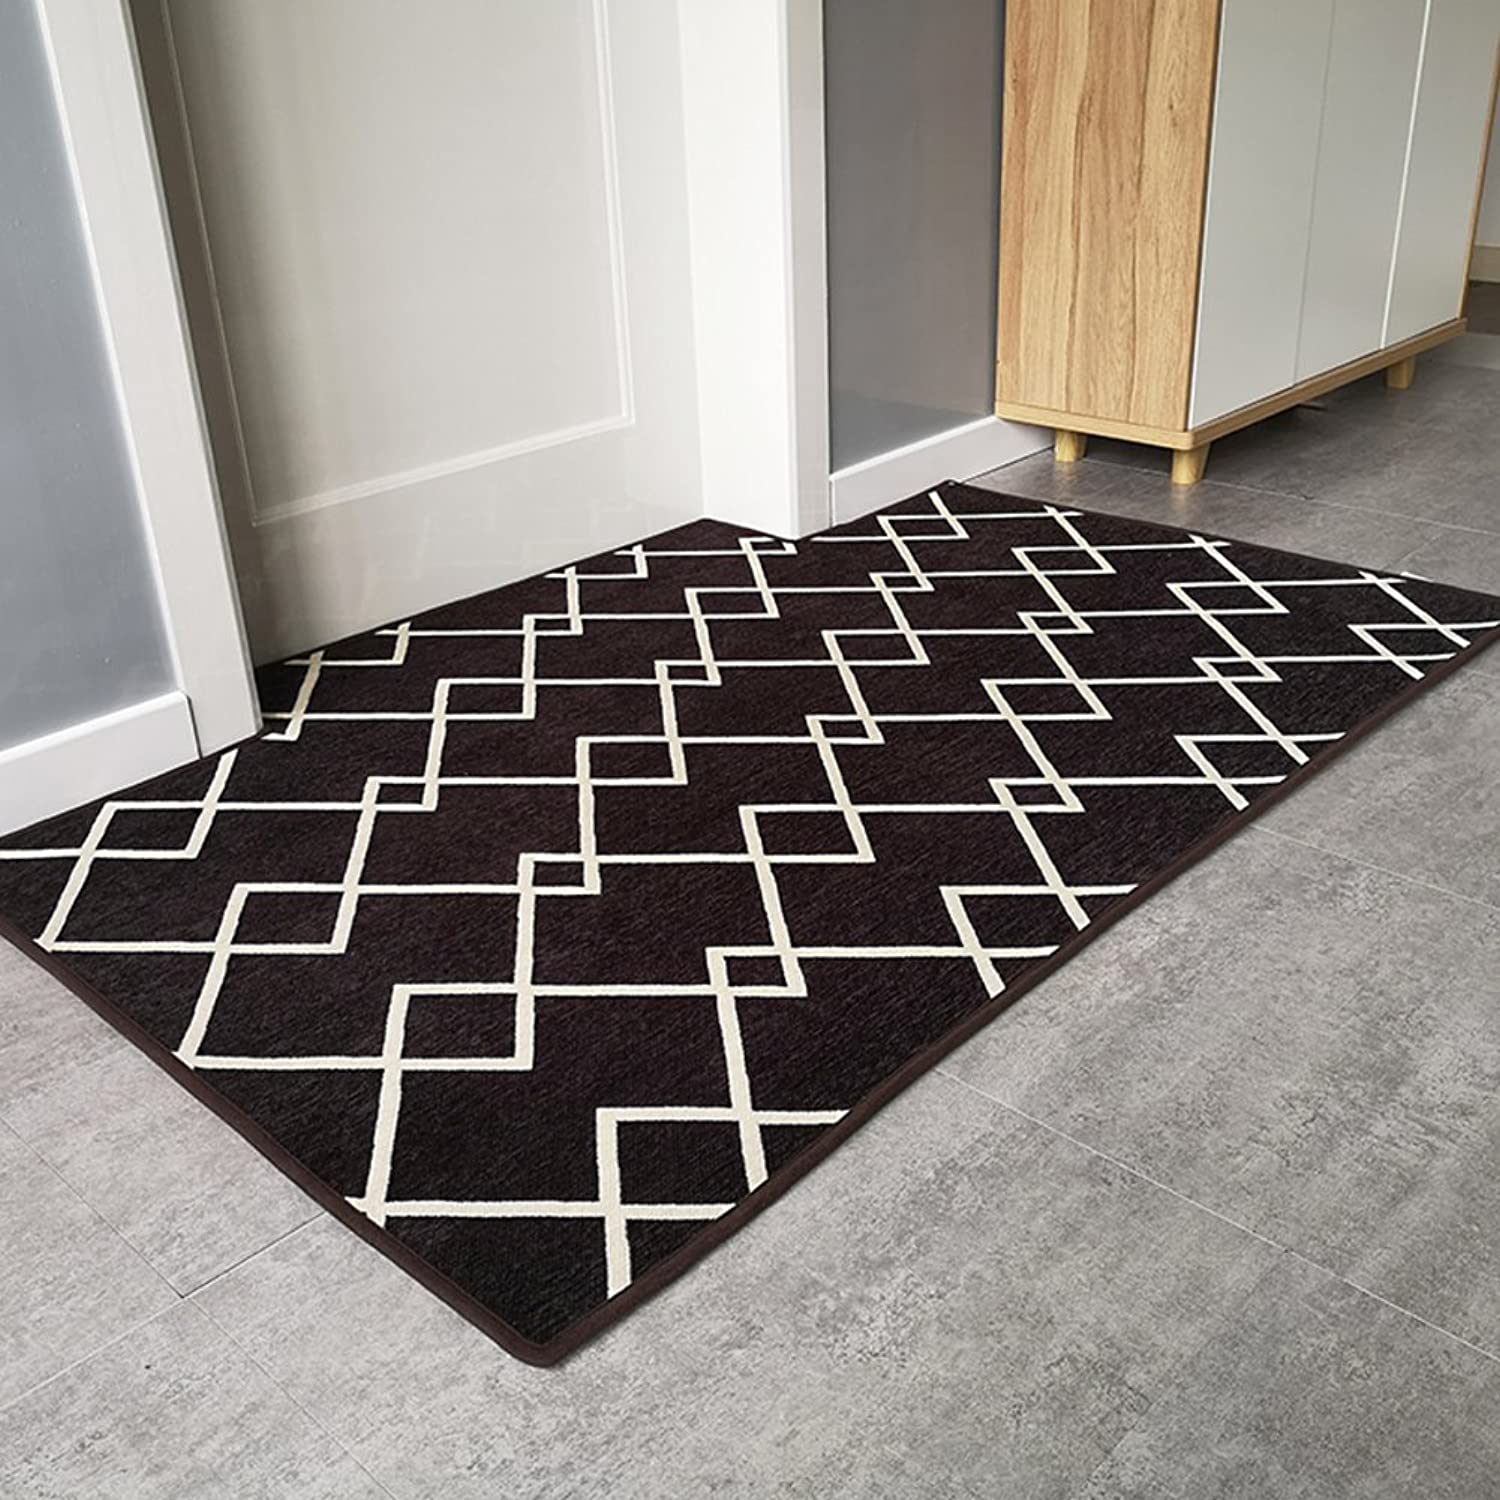 Non Slip Easy Clean Doormat,Super Soft Durable Area Rug Indoor Outdoor Small Mat Modern Plush Carpet Entrance Rug-G 100x140cm(39x55inch)